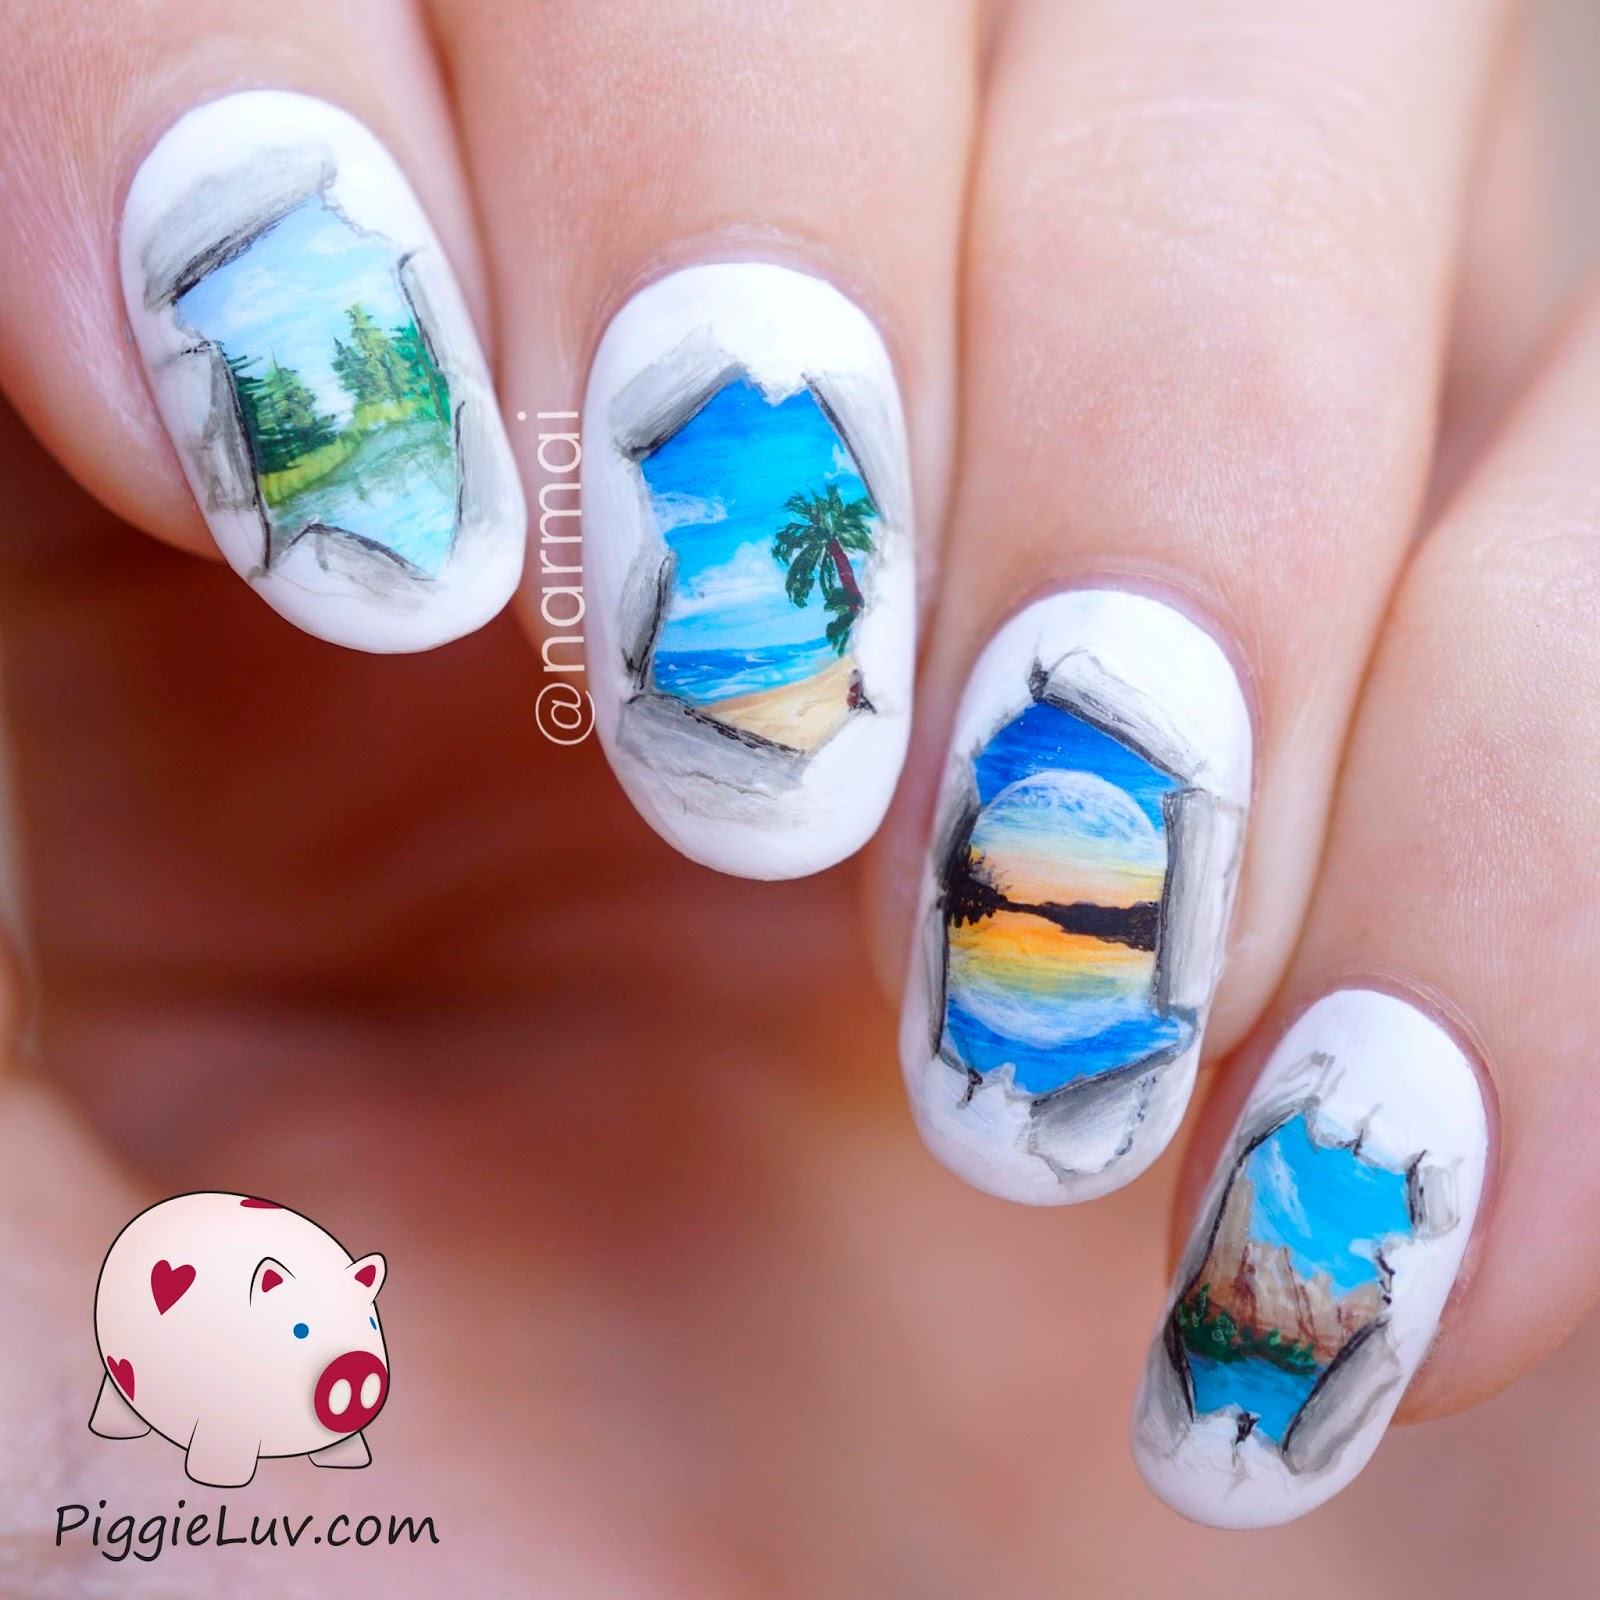 Pics Of Nail Art: PiggieLuv: Tear In The Fabric Of Reality, Freehand Nail Art